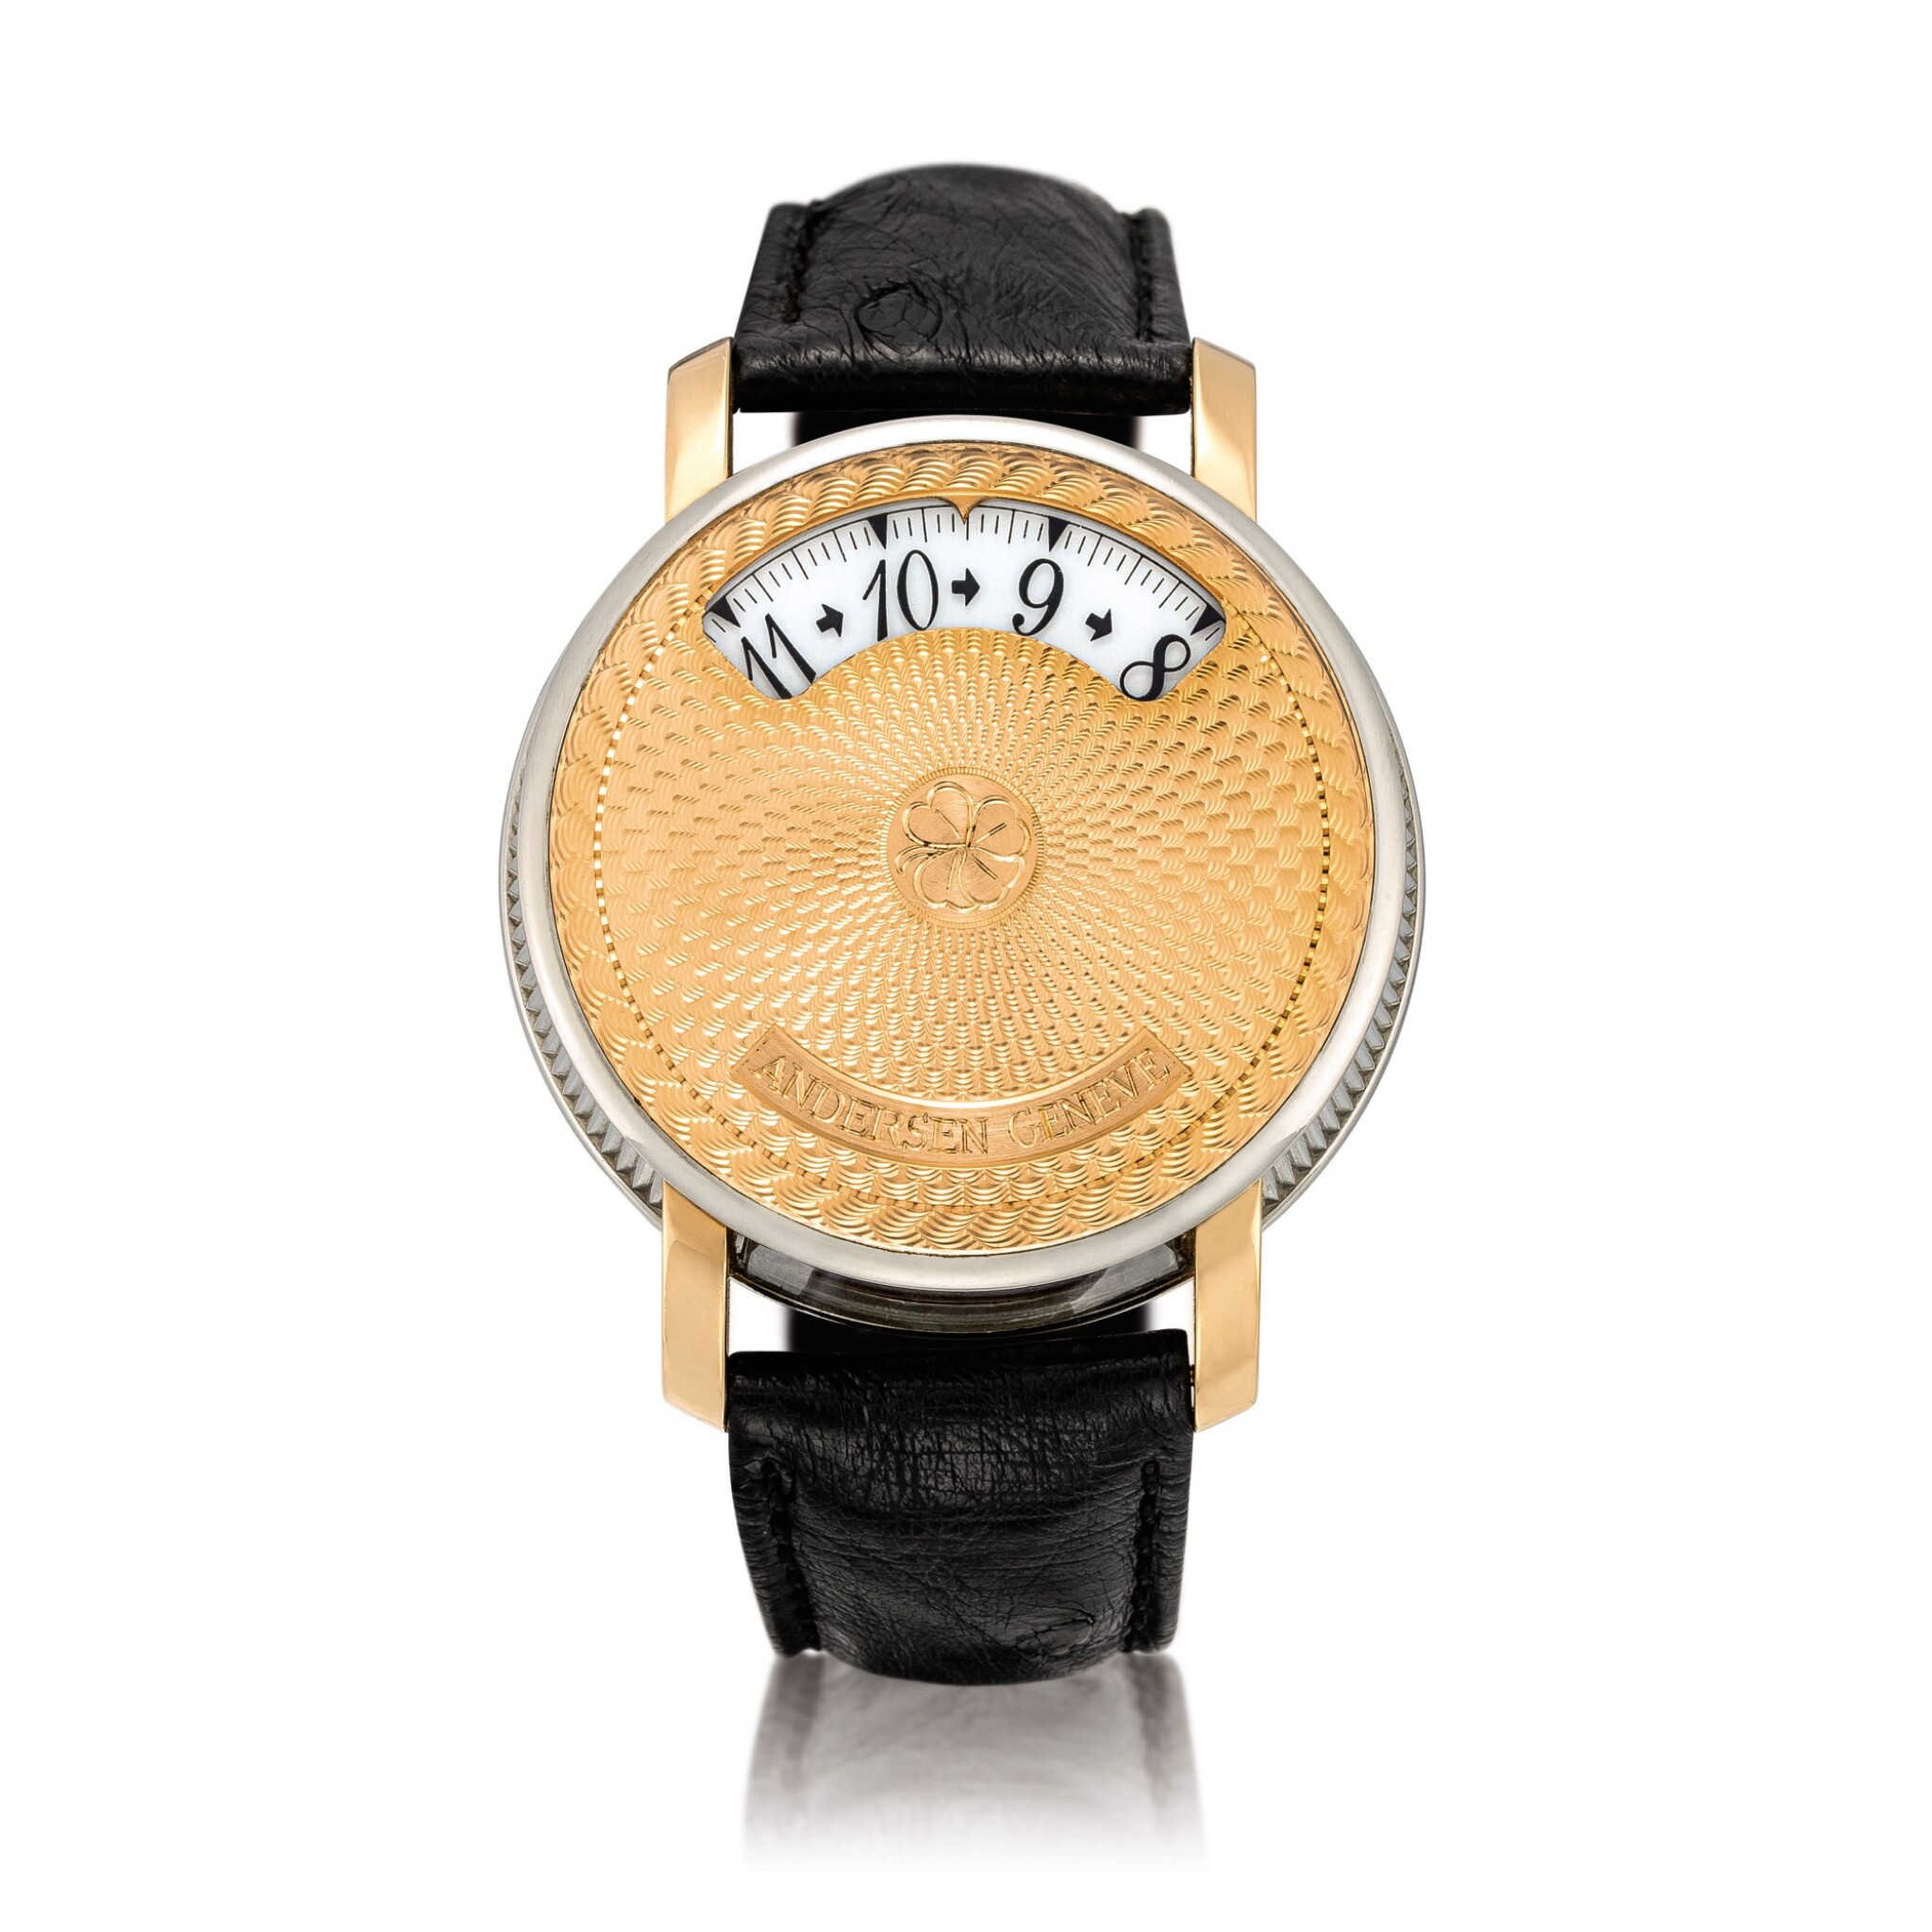 View full screen - View 1 of Lot 2204. Andersen Geneve   Montre À Tact, A limited edition two colour gold wristwatch with wandering time display, Circa 2002   Montre À Tact  限量版雙色金腕錶,備扇形時間顯示,約2002年製.